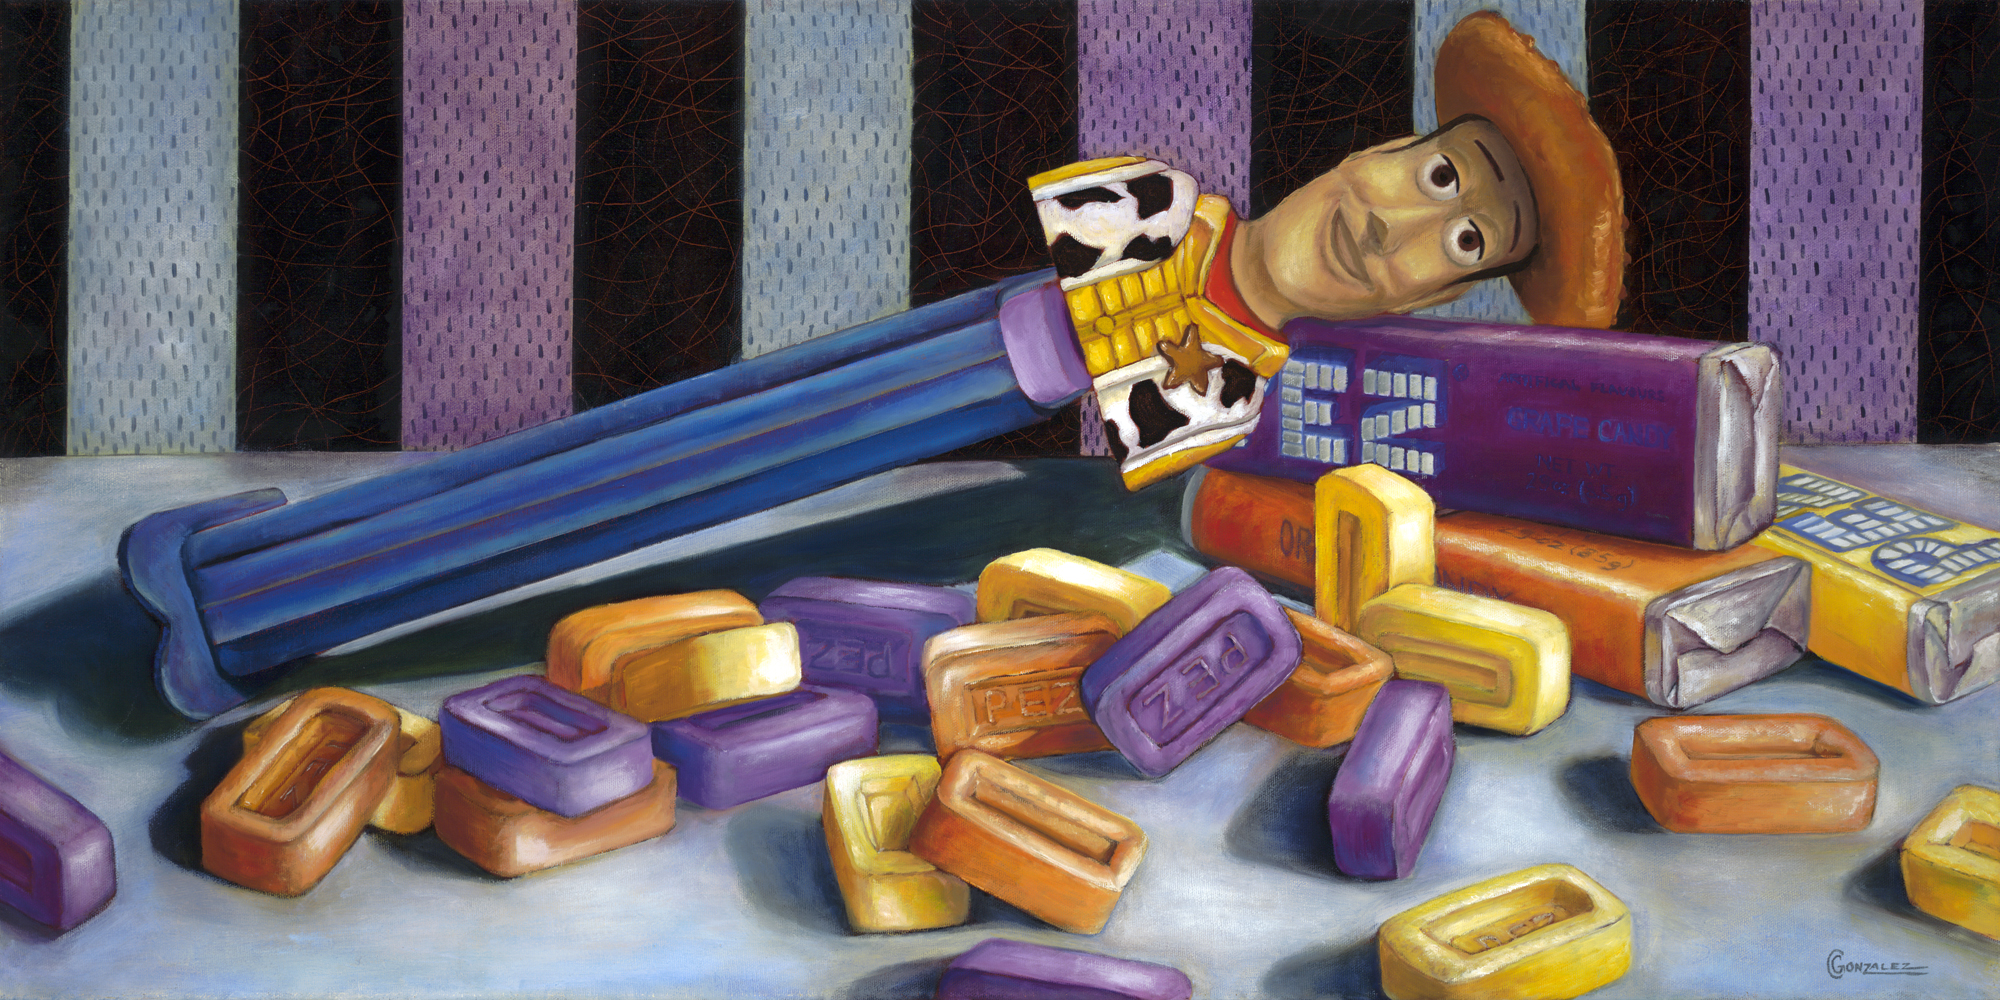 Carmen Gonzalez: 'pez woody', 2013 Oil Painting, Food. Painted with oil on canvas.  My candies series paintings were inspired by childhood memories.  Every time I see certain candies, I am reminded of times as a child.  Candy has a way of luring us in with its bright colours, fun shapes, and addicting flavours.  It brings out the child ...